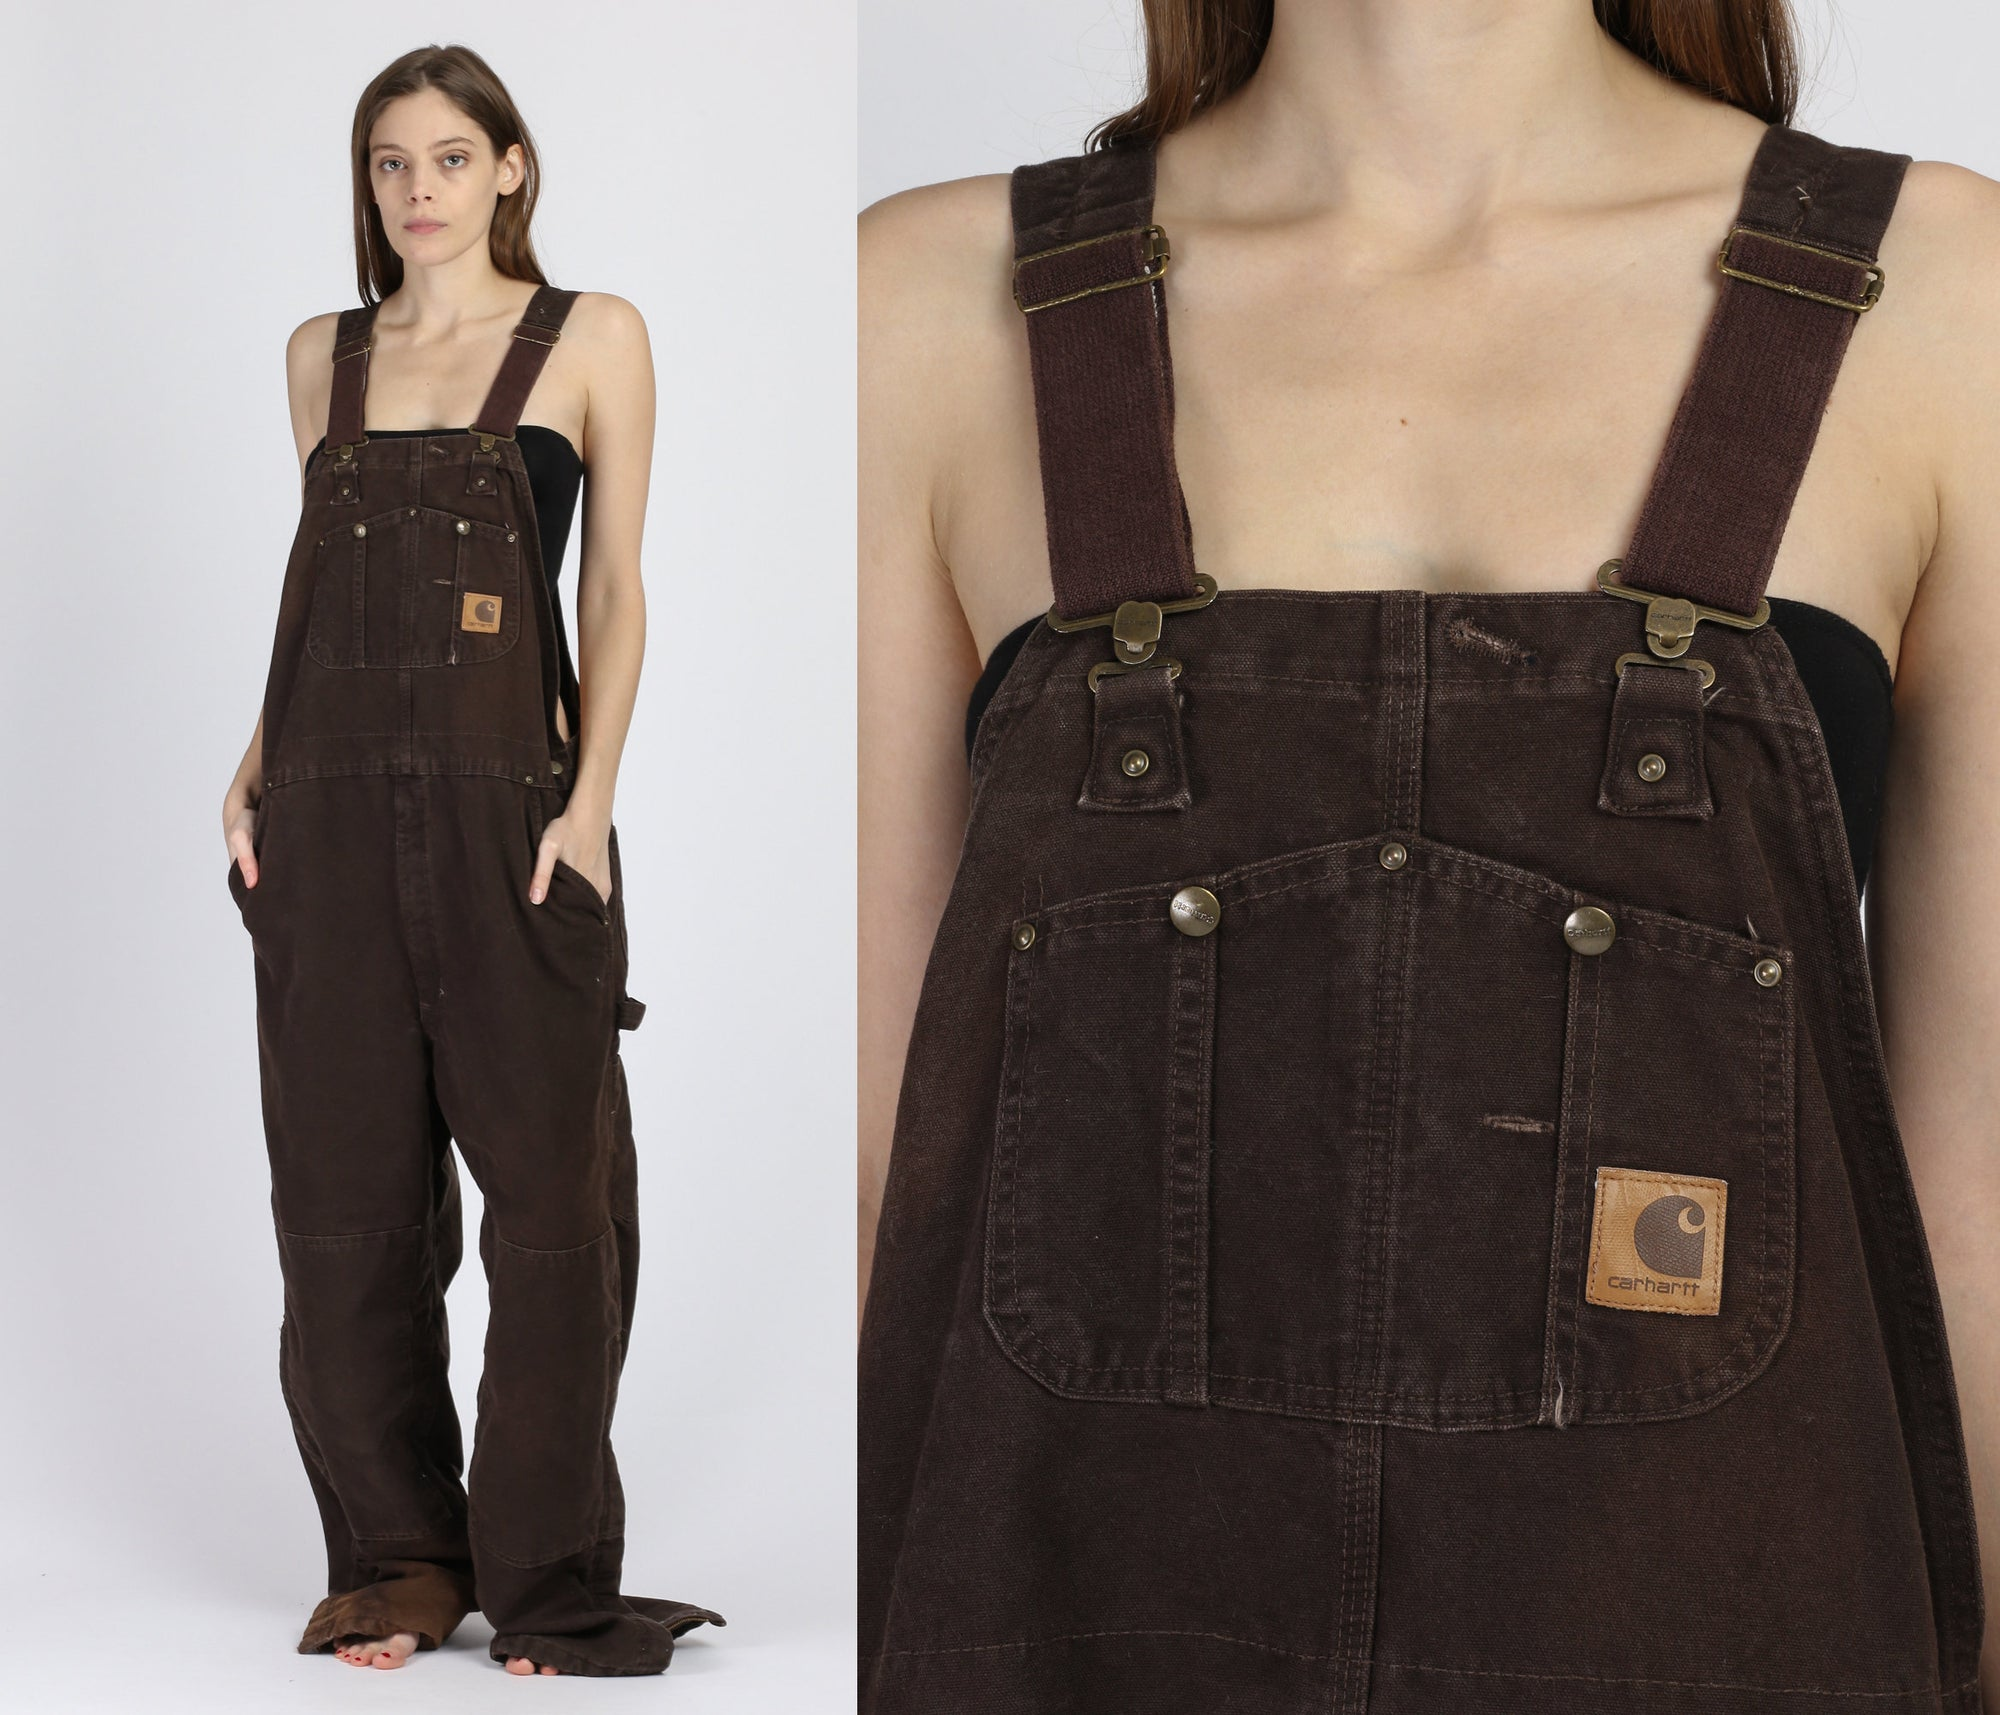 Vintage Carhartt Insulated Overalls - 42x32, Men's XL